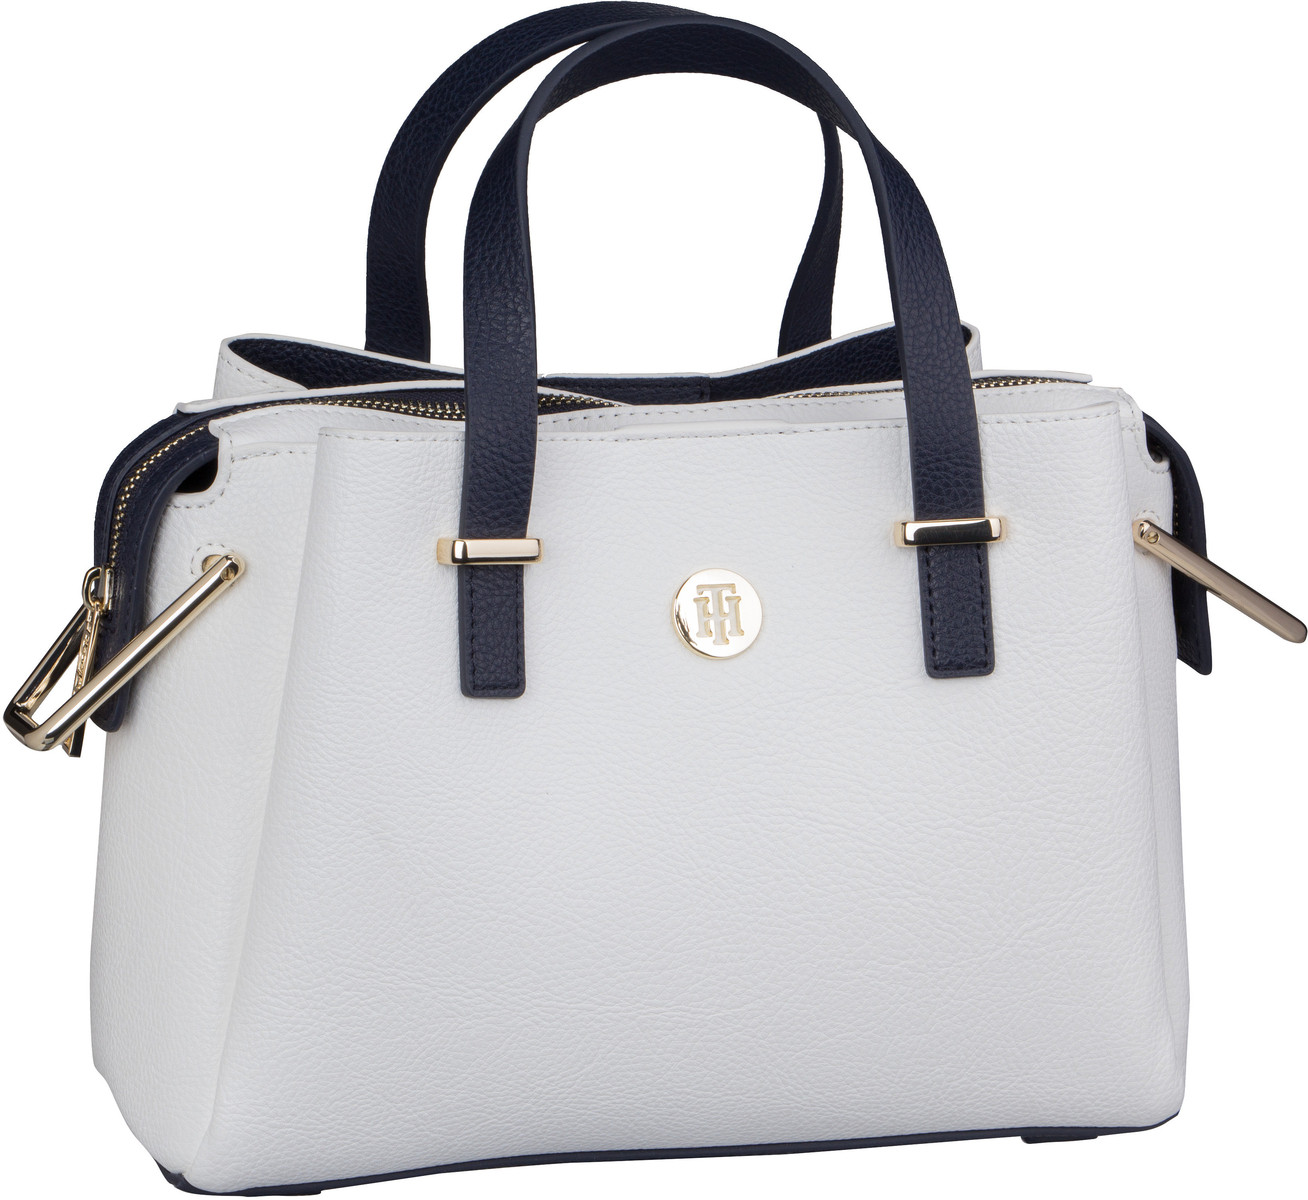 Handtasche TH Core Med Satchel 6816 Bright White